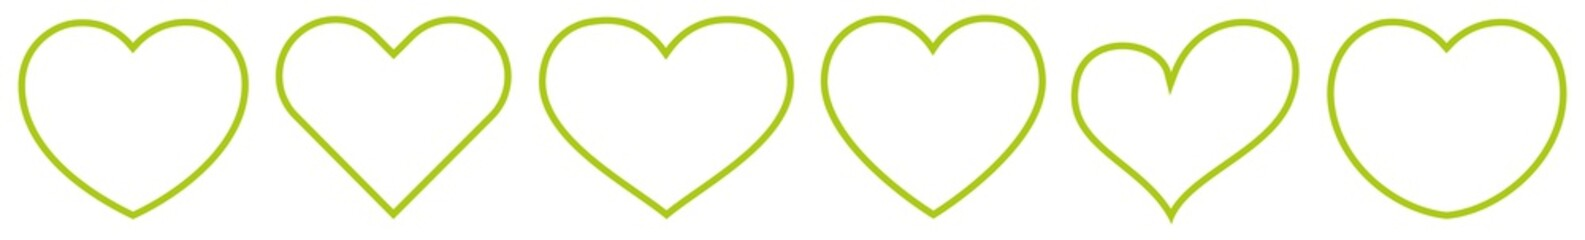 Heart Shape Green Eco | Nature | Love | Logo | Variations